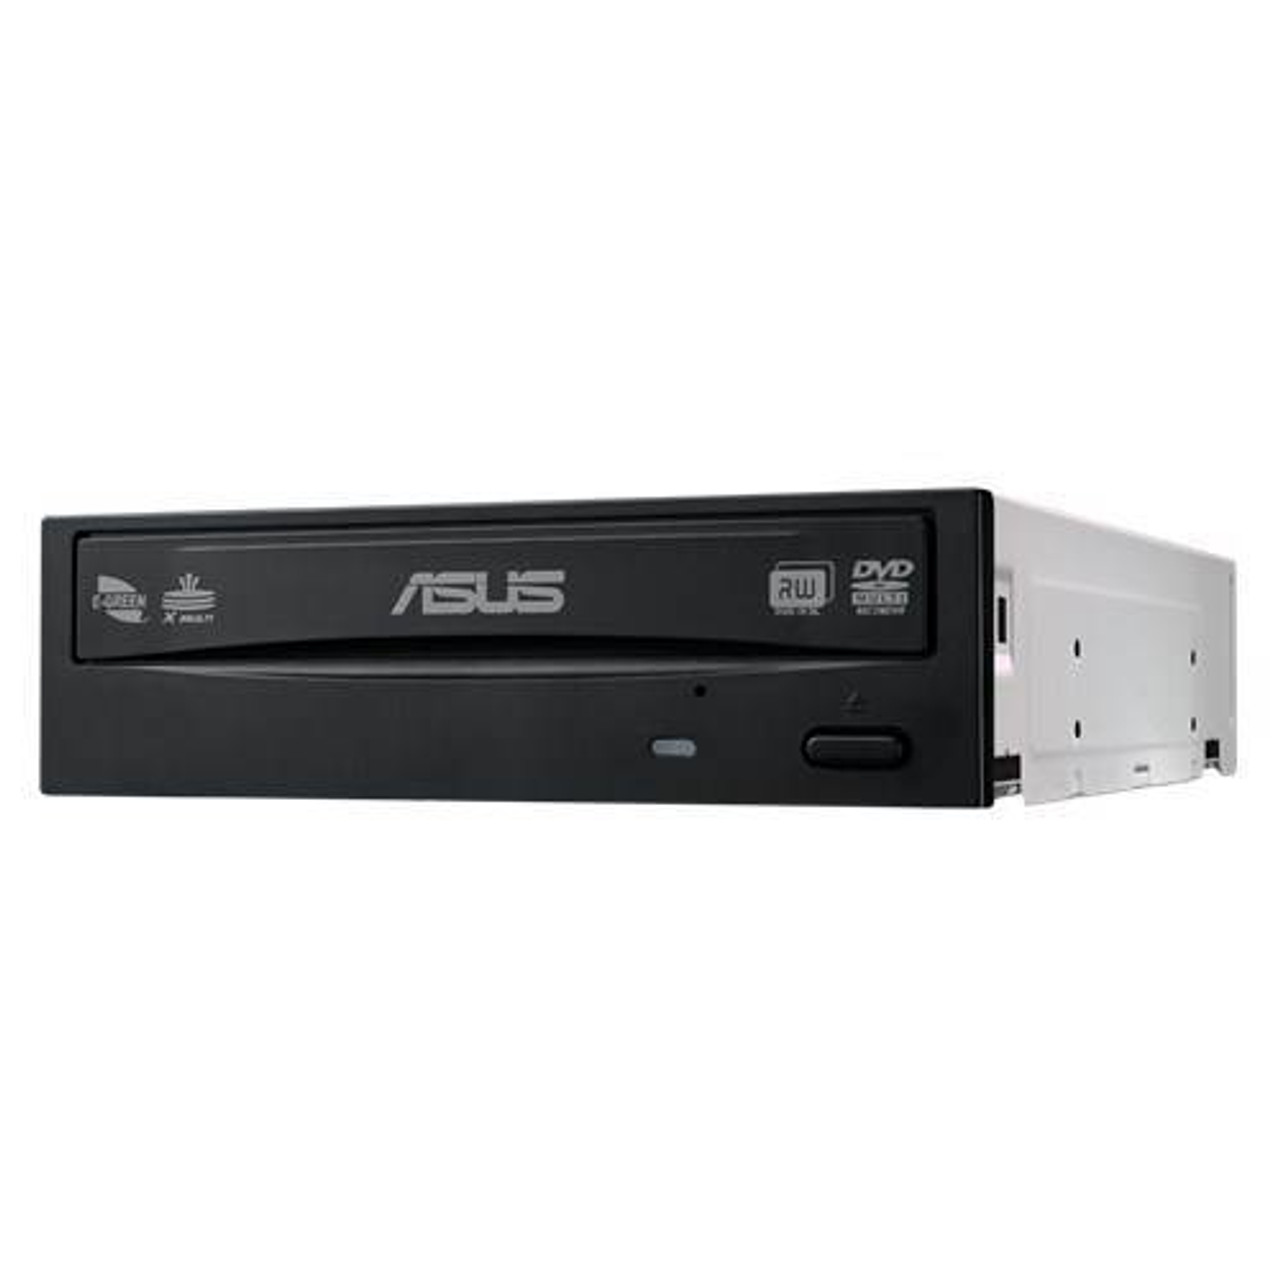 Product image for Asus DRW-24D5MT 24x DVD Writer | CX Computer Superstore